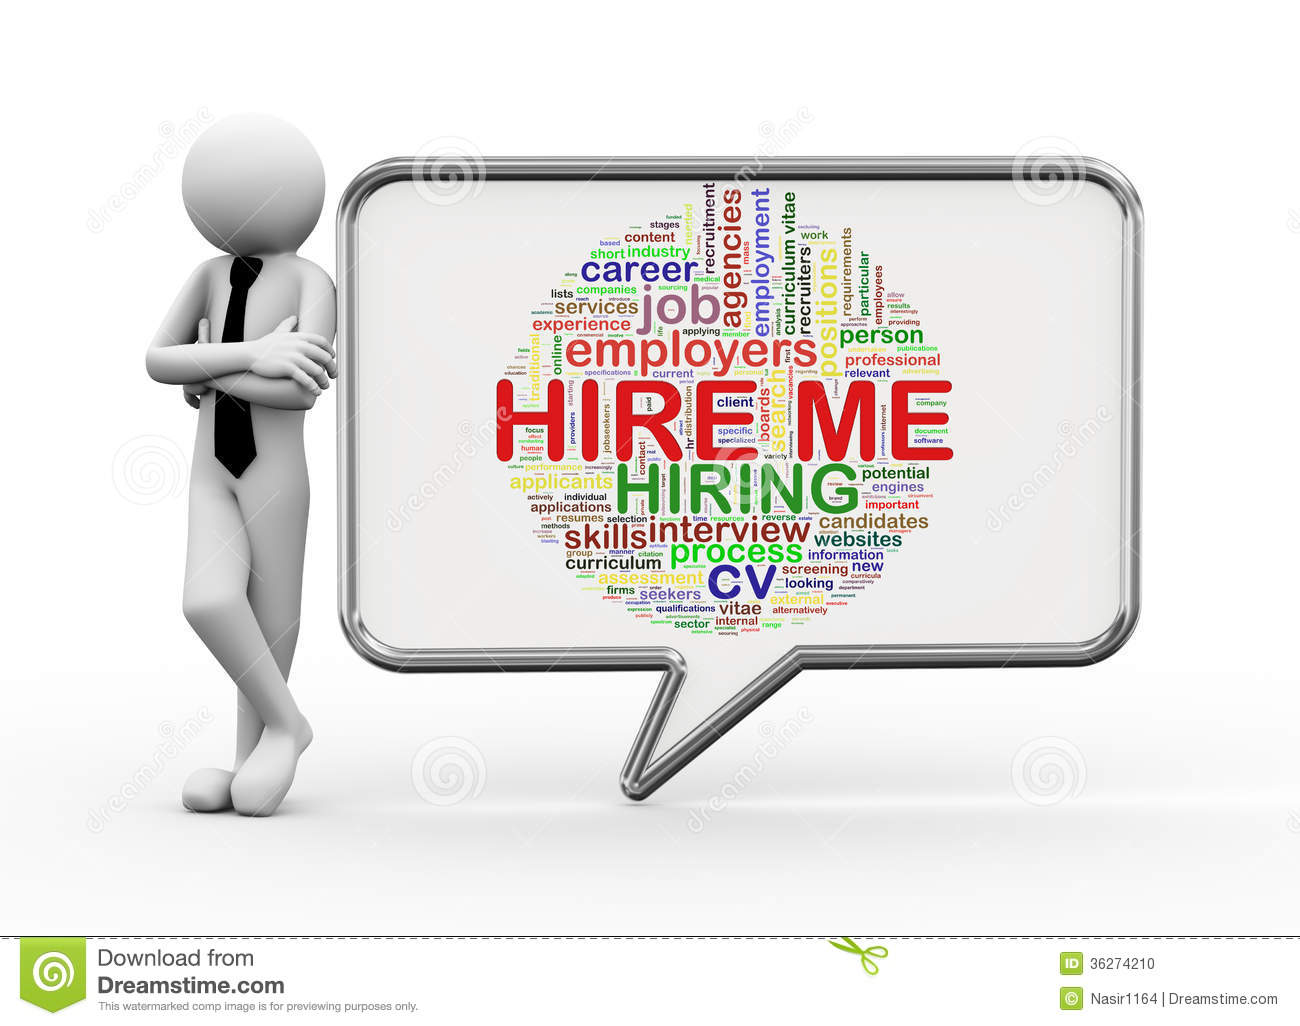 79R-MOS Recruiter / Associate Professional in Human Resources (aPHR) Analysis